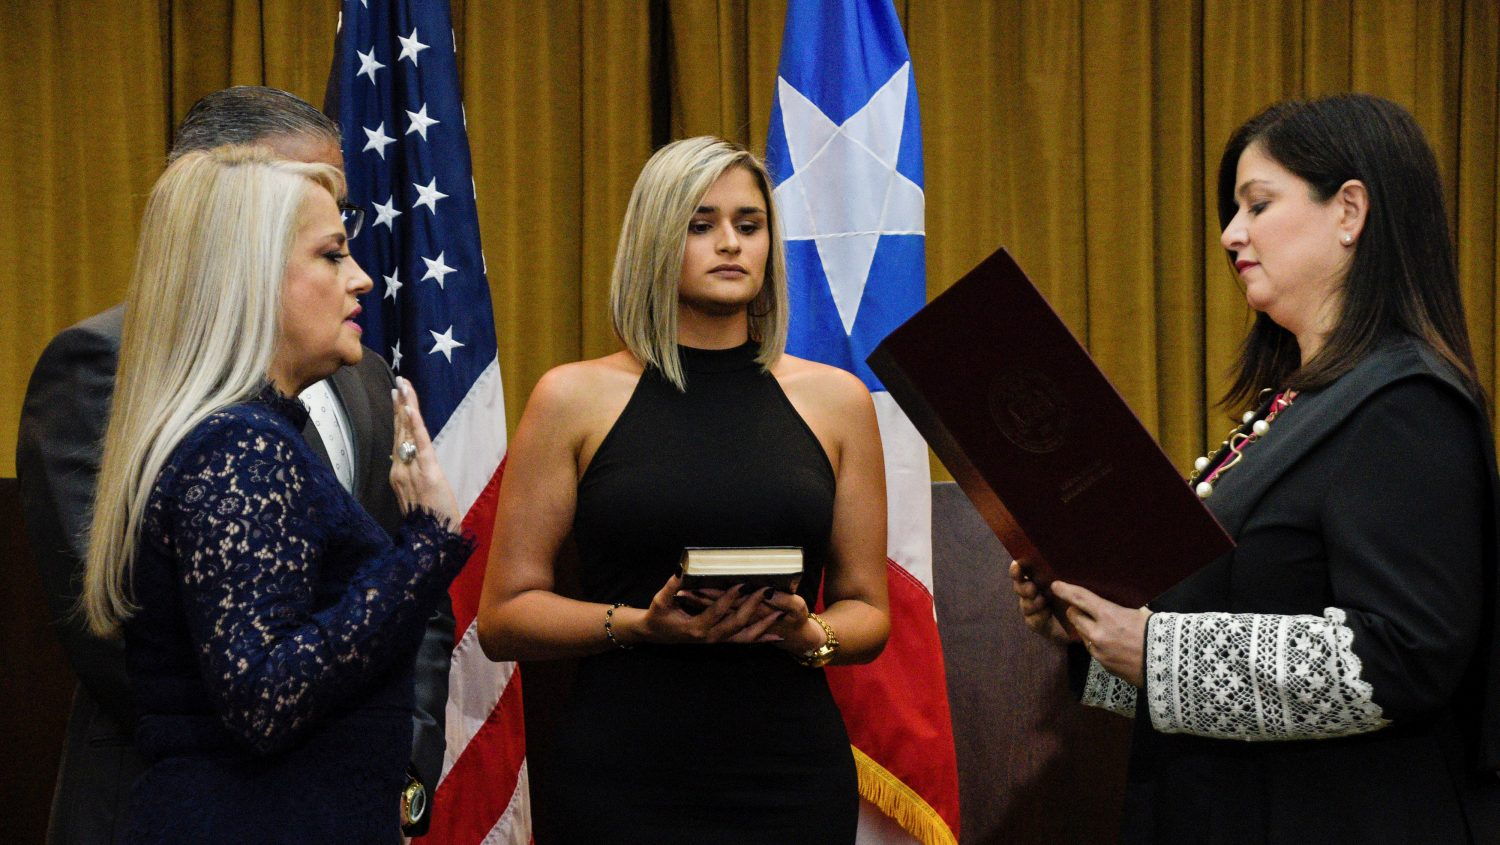 FILE PHOTO: Wanda Vazquez, former Secretary of Justice, is sworn in as Governor of Puerto Rico by Supreme Court Justice Maite Oronoz after Pedro Pierluisi's former oath was declared unconstitutional by the Supreme Court of Puerto Rico, in San Juan, Puerto Rico, August 7, 2019. Also pictured are Vazquez's husband Jorge Diaz (back L) and their daughter, Beatriz Diaz. REUTERS/Gabriella N. Baez/File Photo